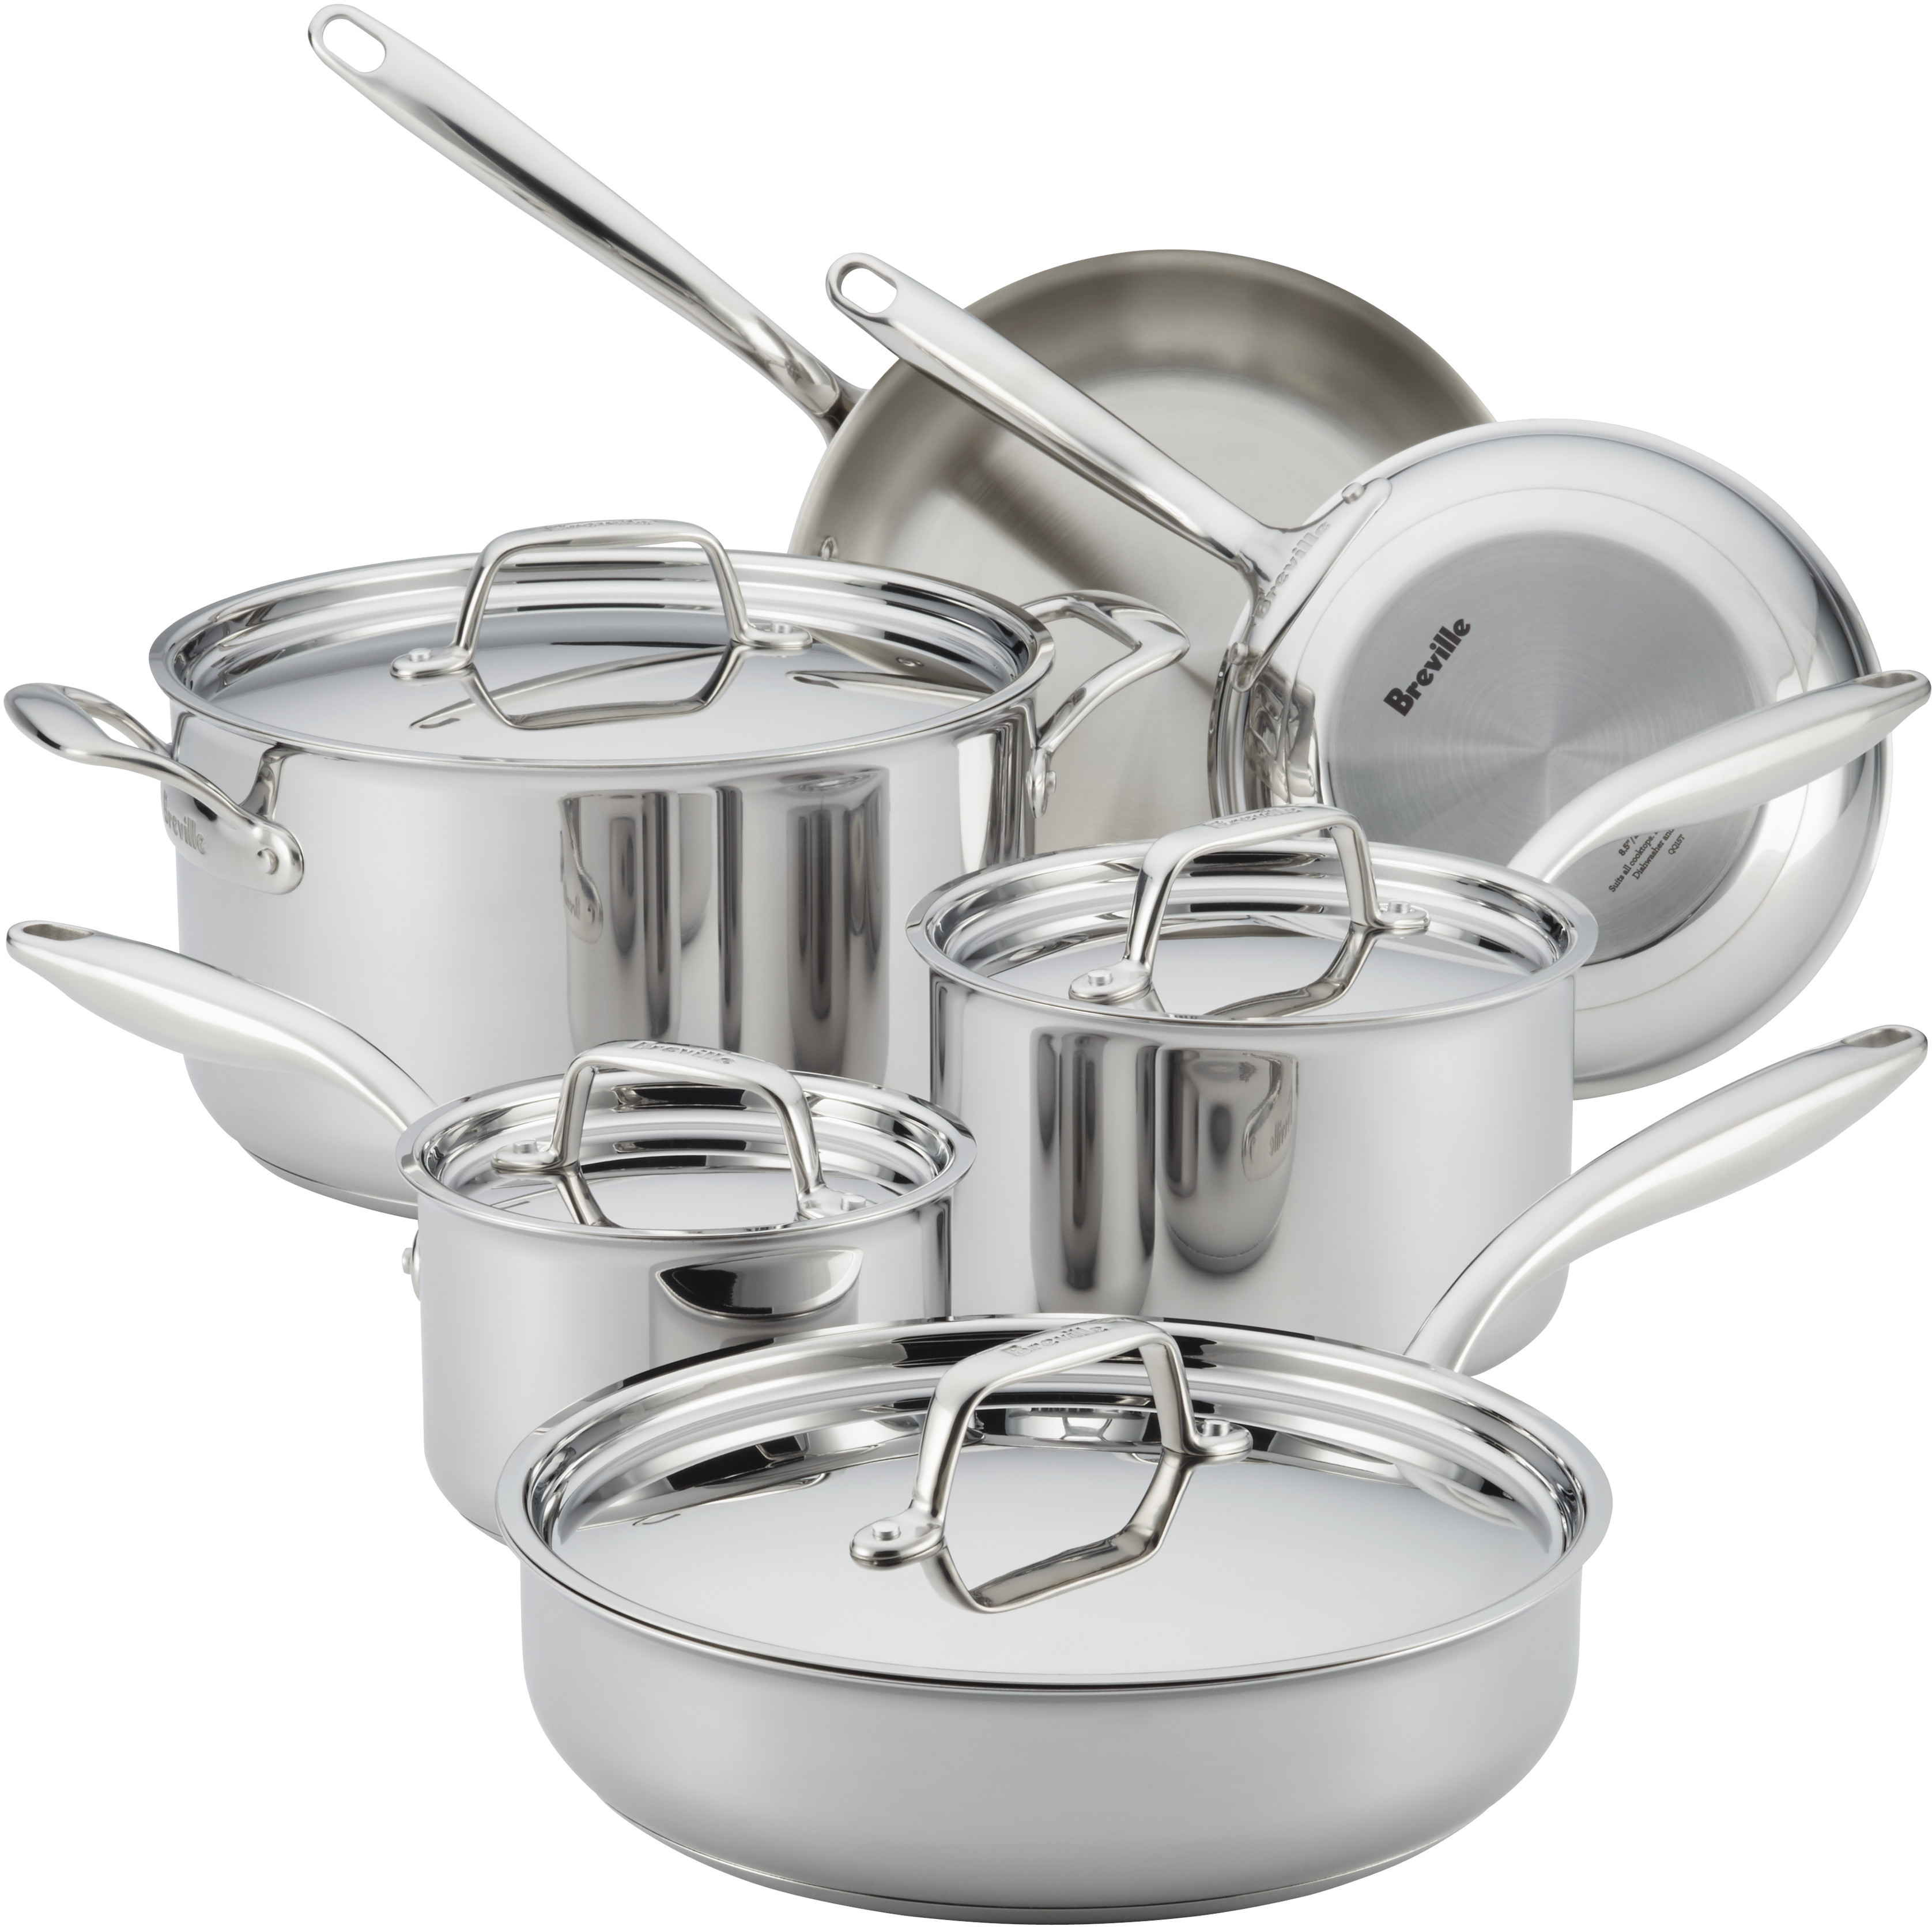 Clad Stainless Steel Cookware Set With